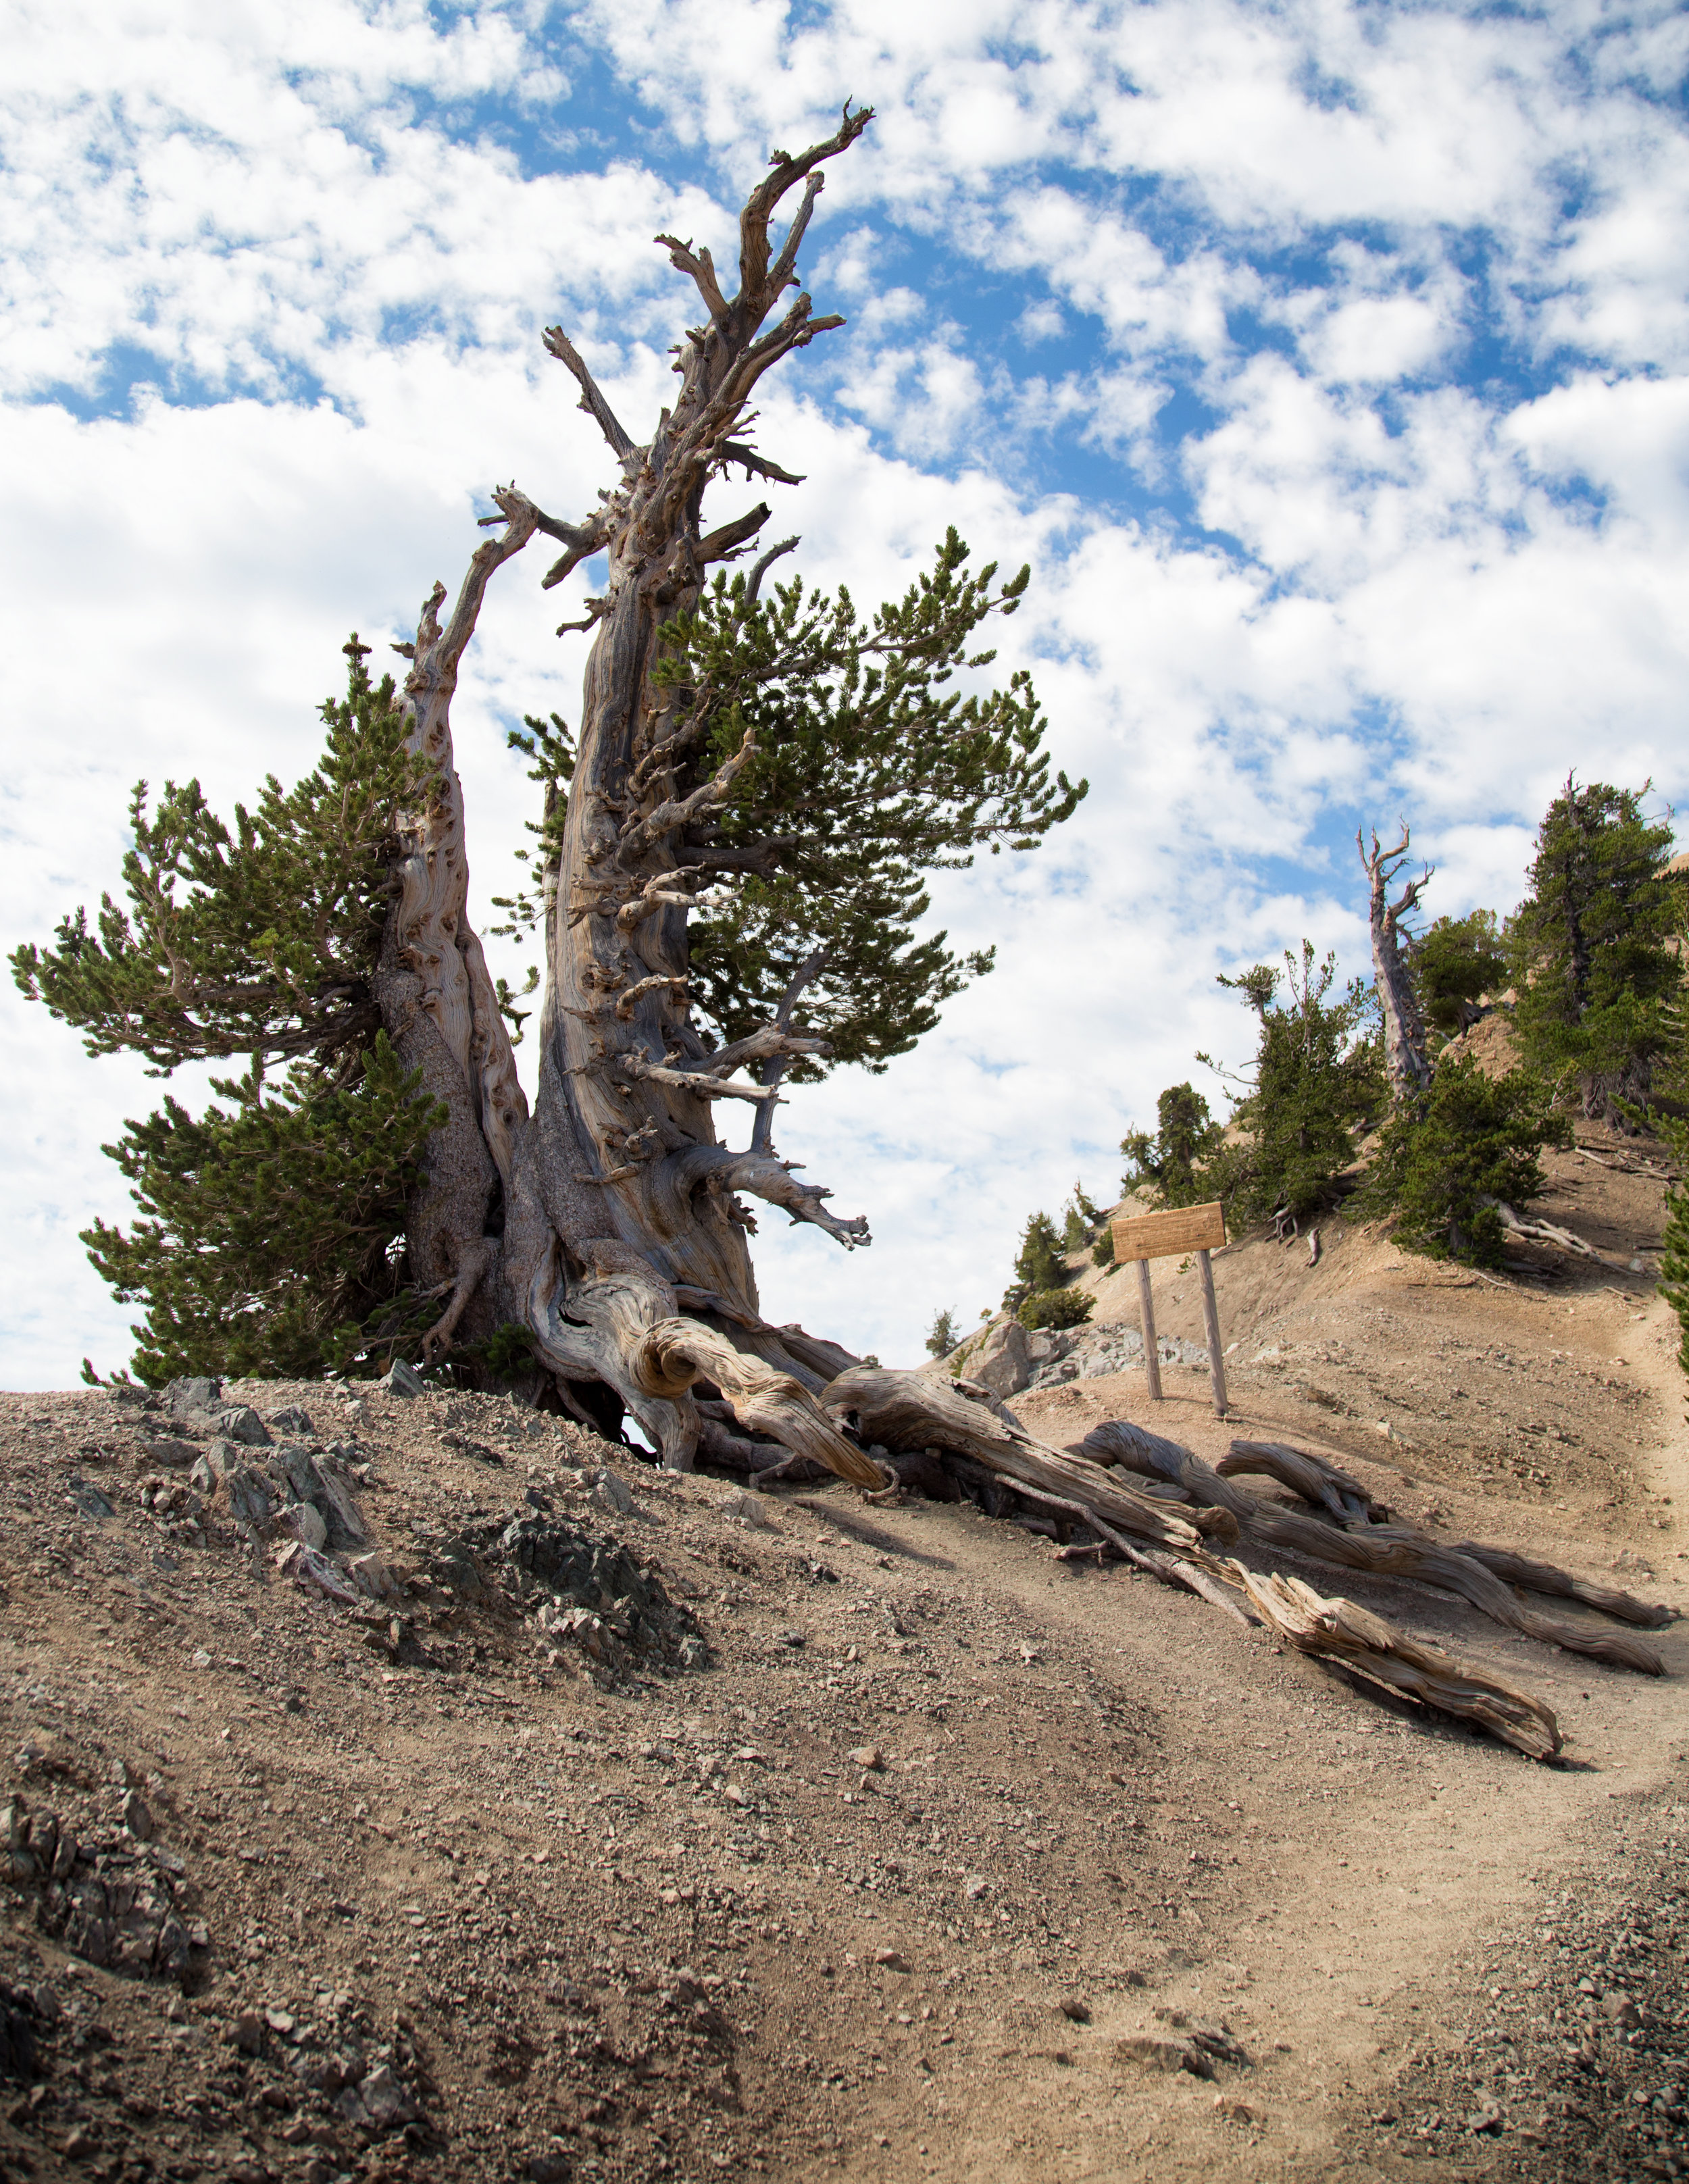 """On the ridge you'll come upon the magnificent Wally Waldron tree. It is one of the oldest living limber pines estimated at over 1,500 years old. It is named after Boy Scout leader, Michael """"Wally"""" Waldron."""